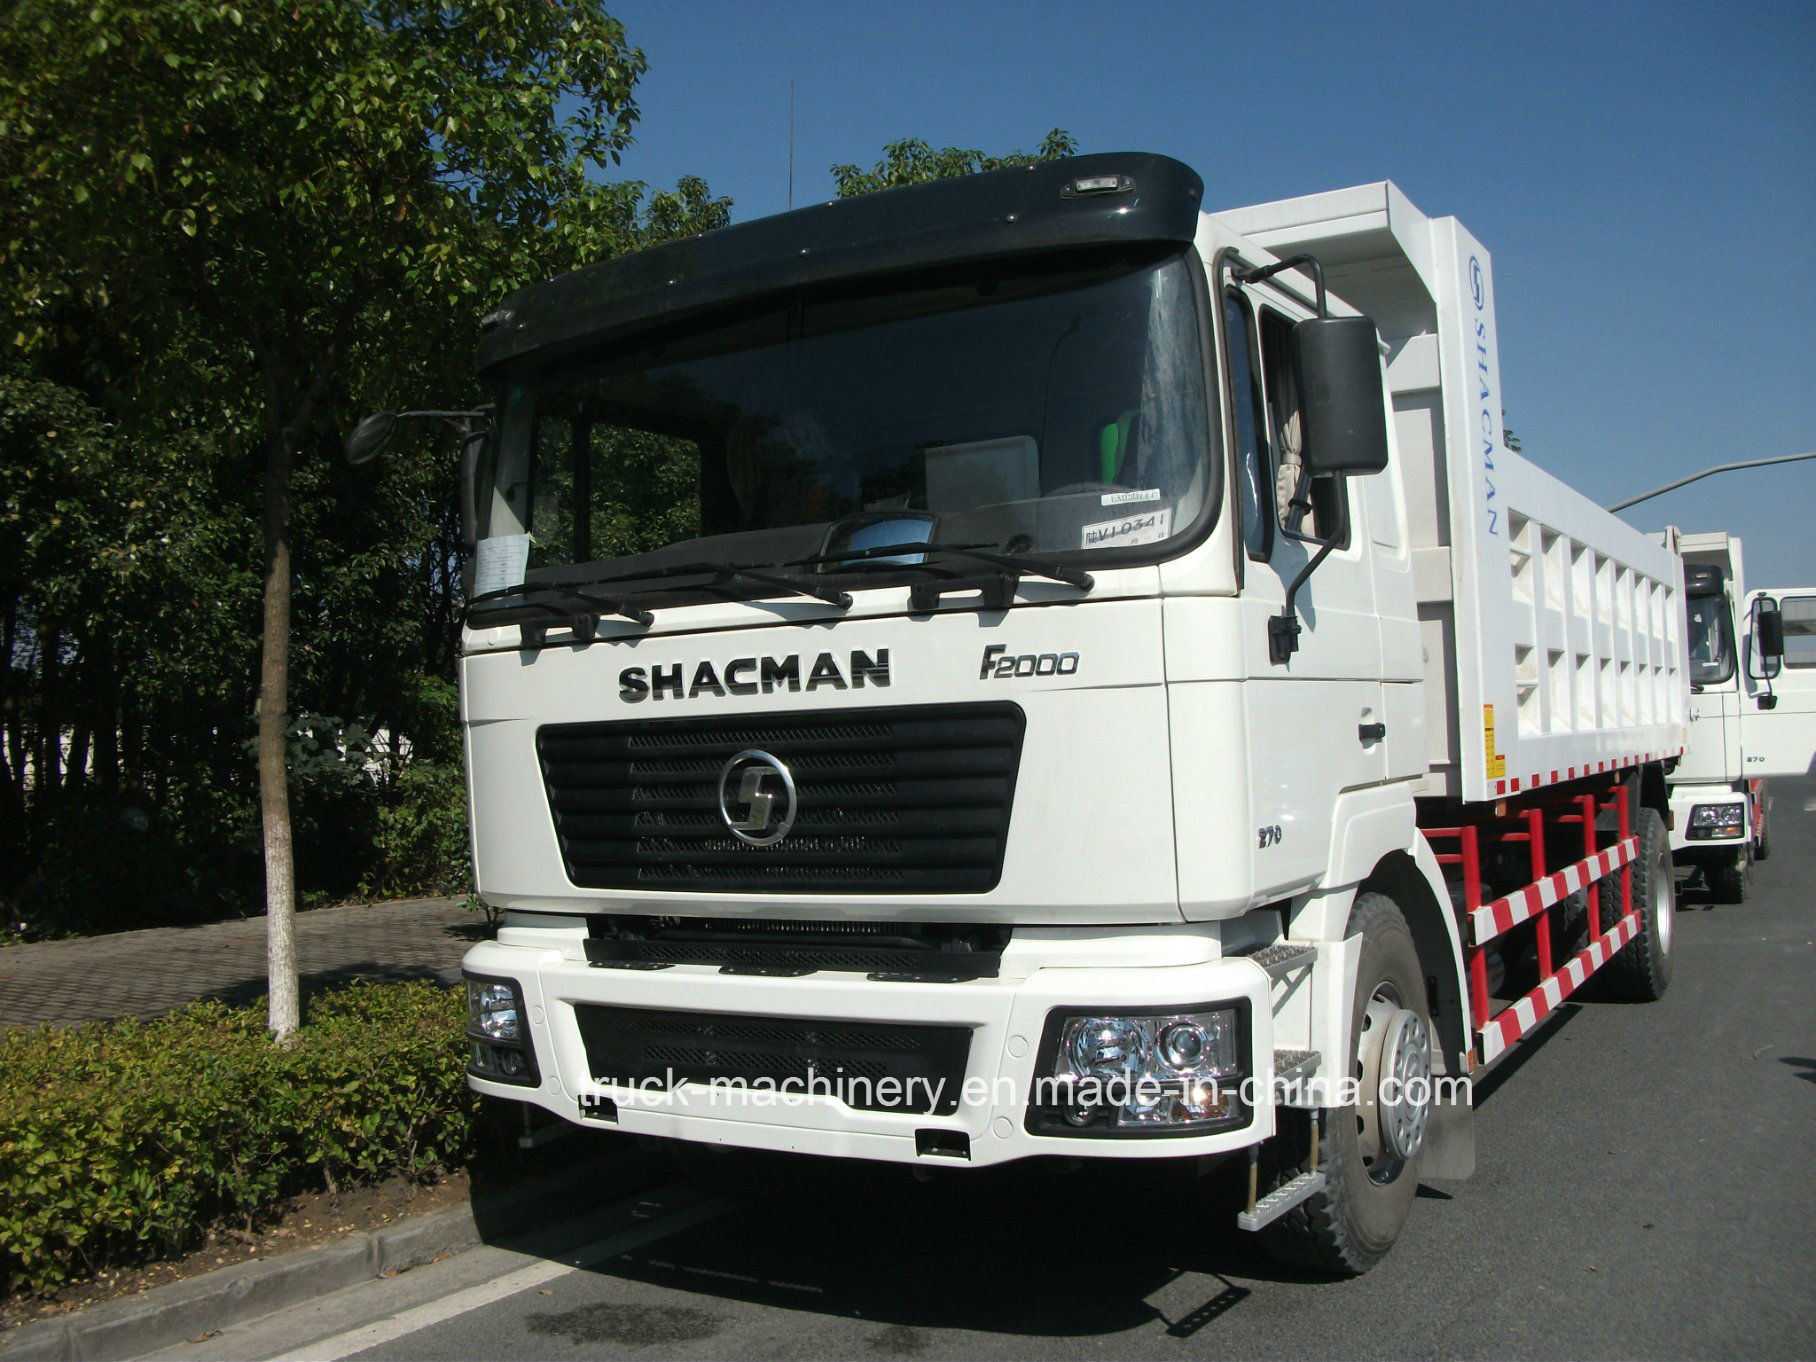 Shacman F2000 4X2 Tipper/Dump Truck for Sale